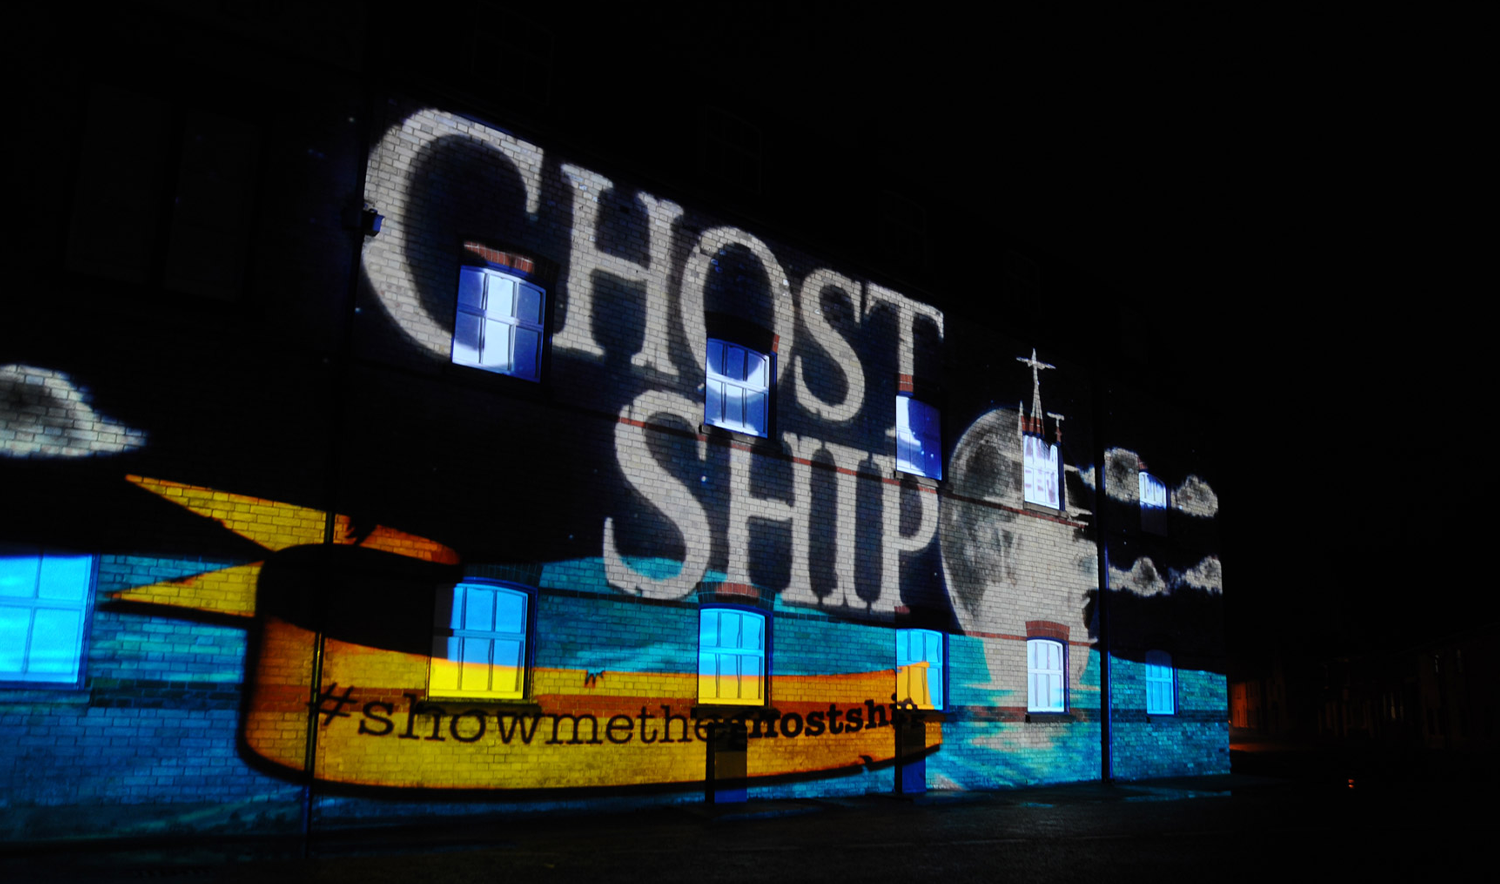 Adnams Ghost Ship projection on the side of the brewery